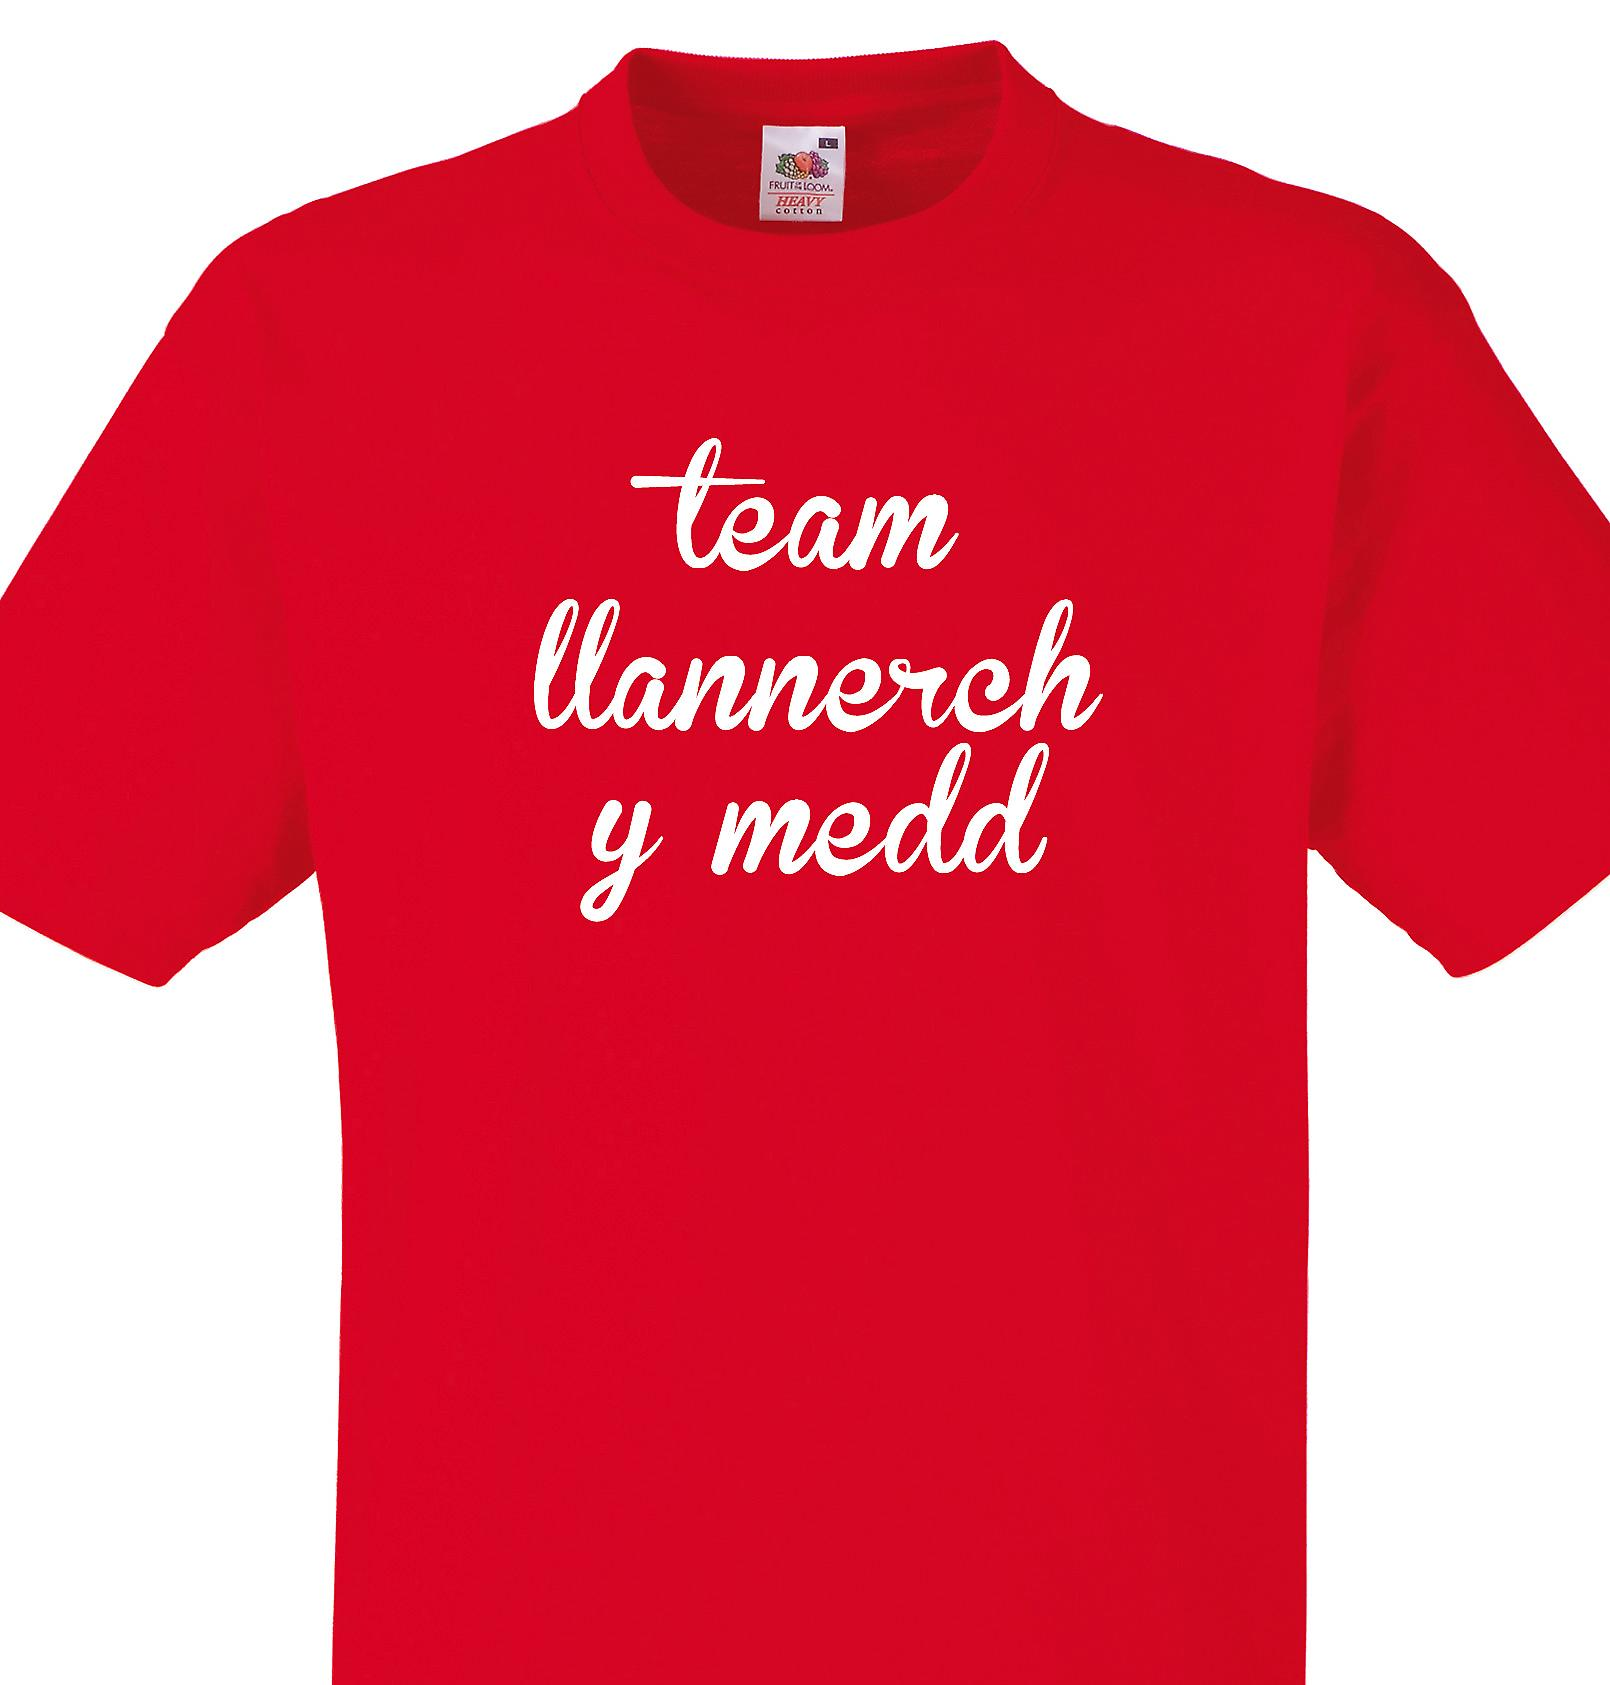 Team Llannerch y medd Red T shirt